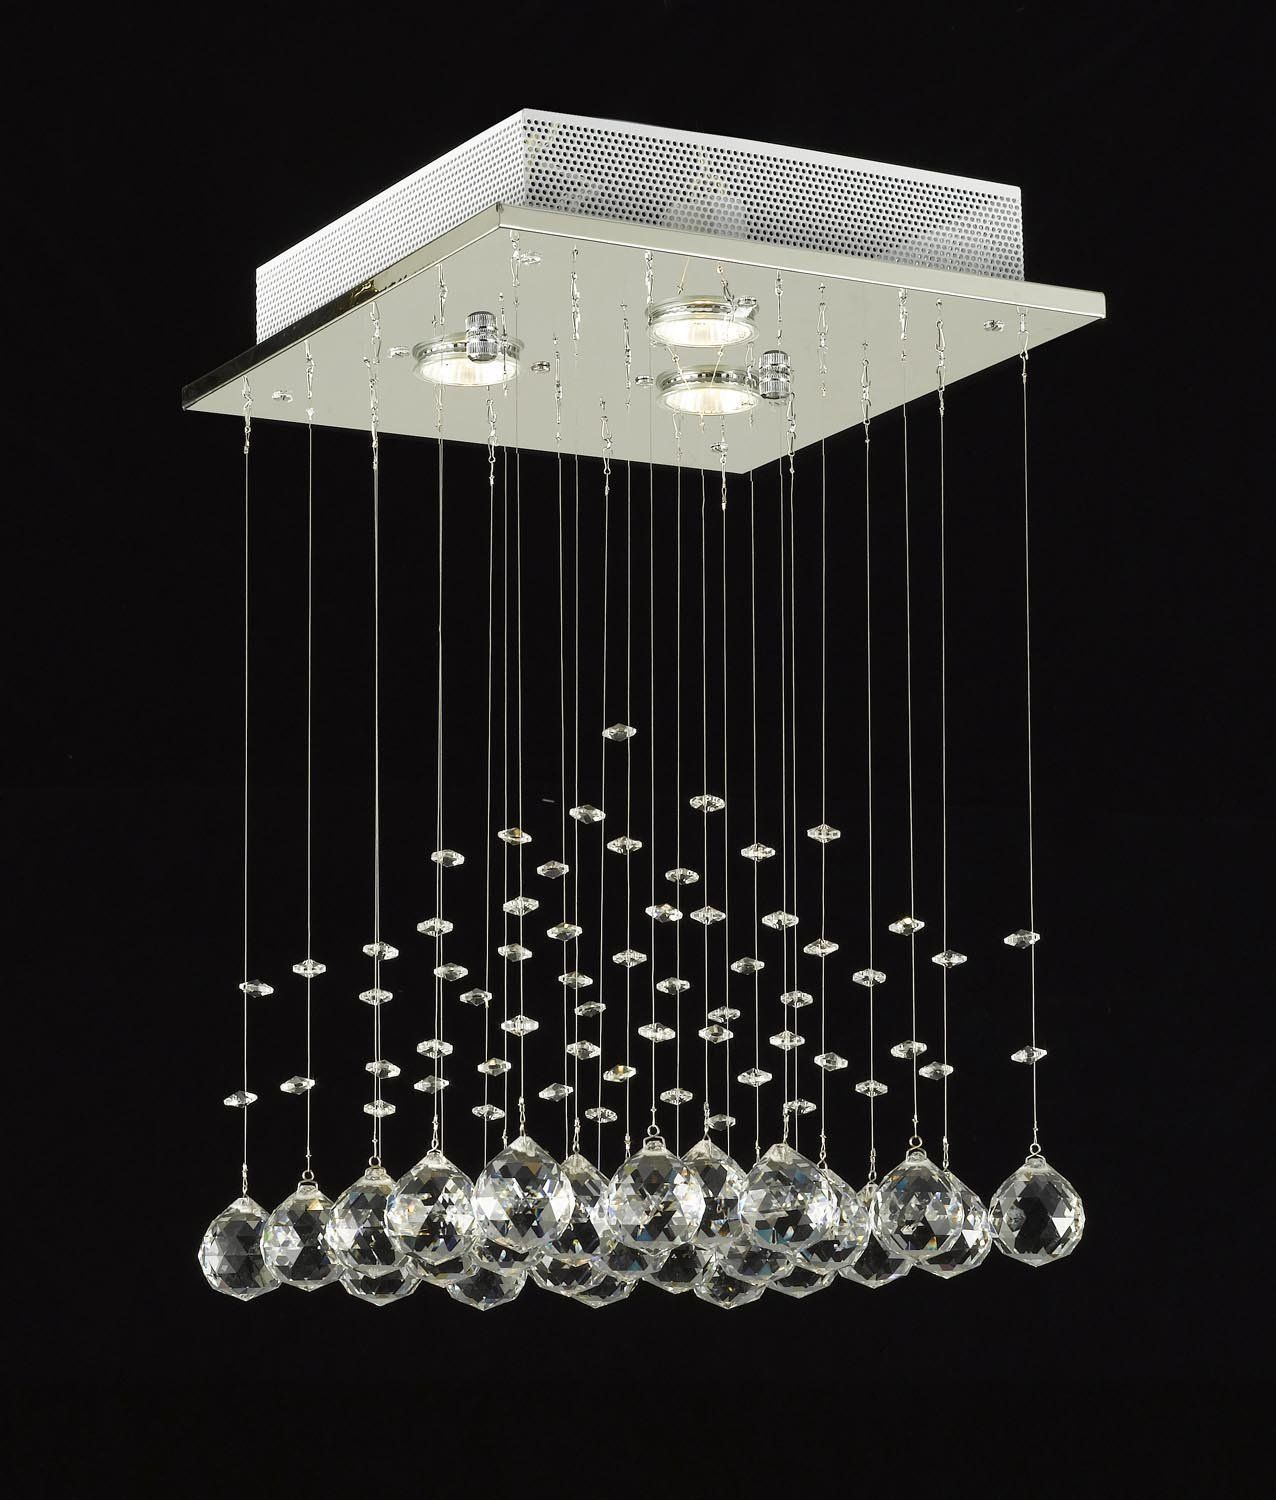 Nature In Design Lamps And Lights Pendant Ceiling Lamp Modern